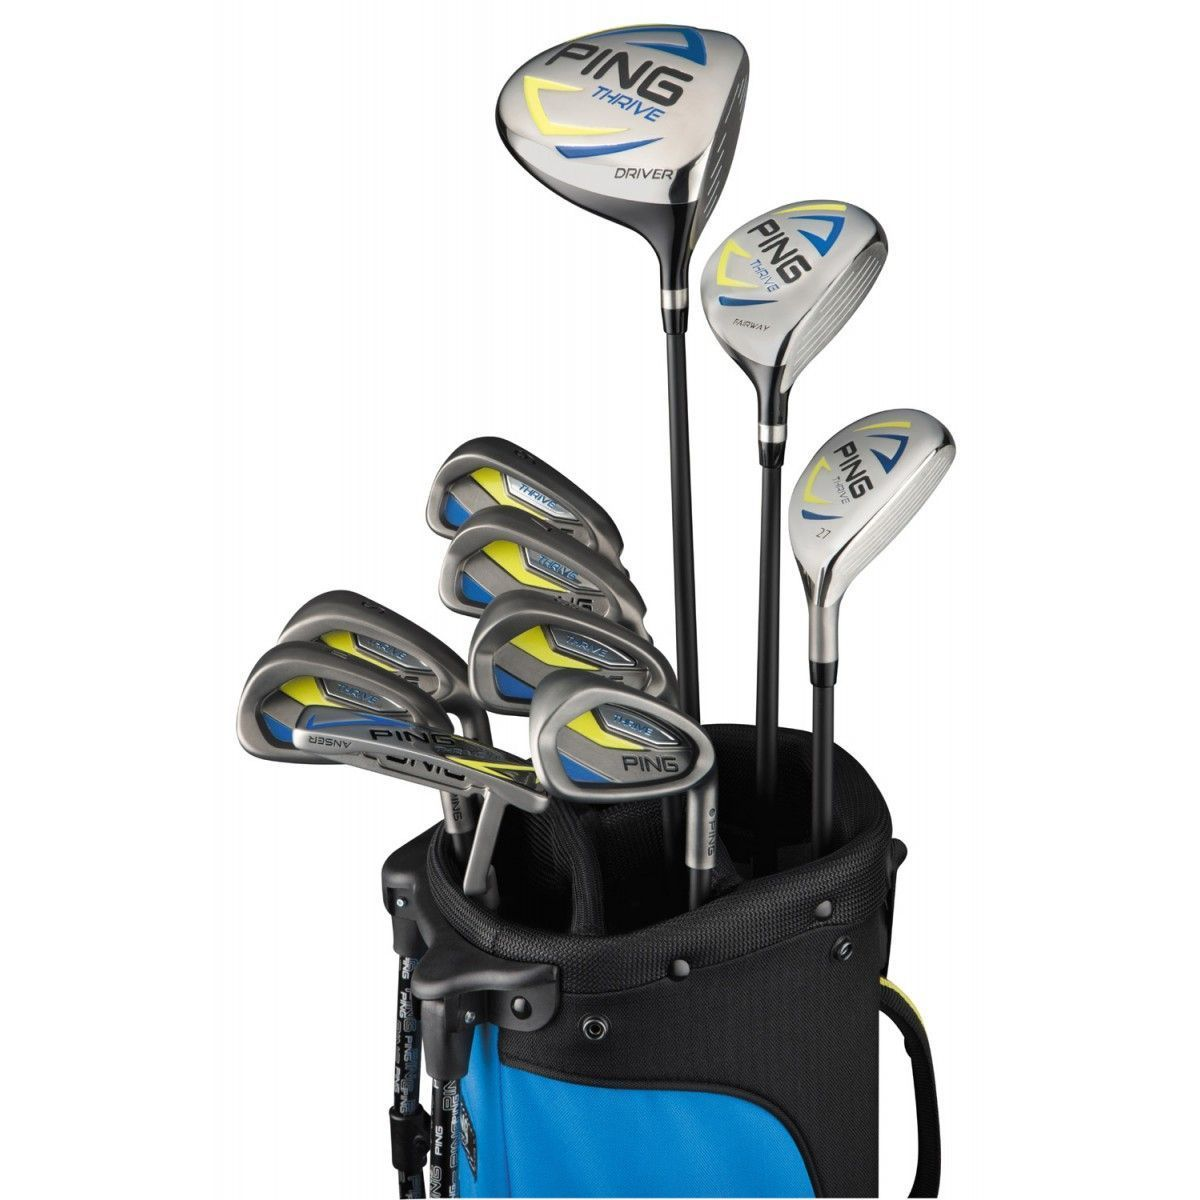 Ping Thrive Junior Golf Clubs